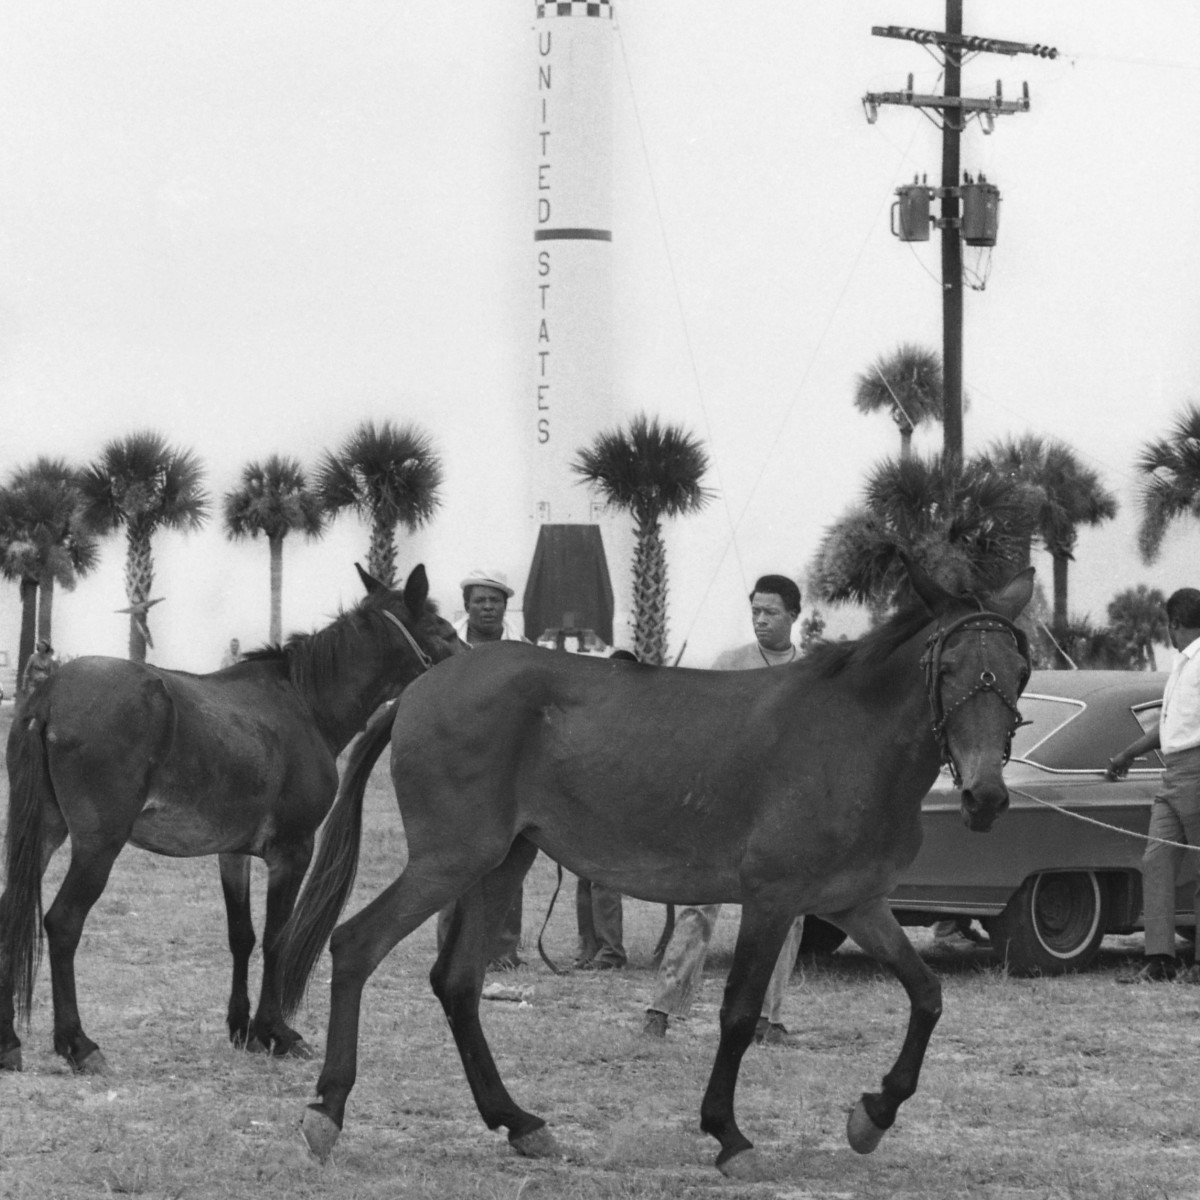 The Southern Christian Leadership Conference's Poor People's marchers line up mules near the gates to the Kennedy Space Center on July 15, 1969.